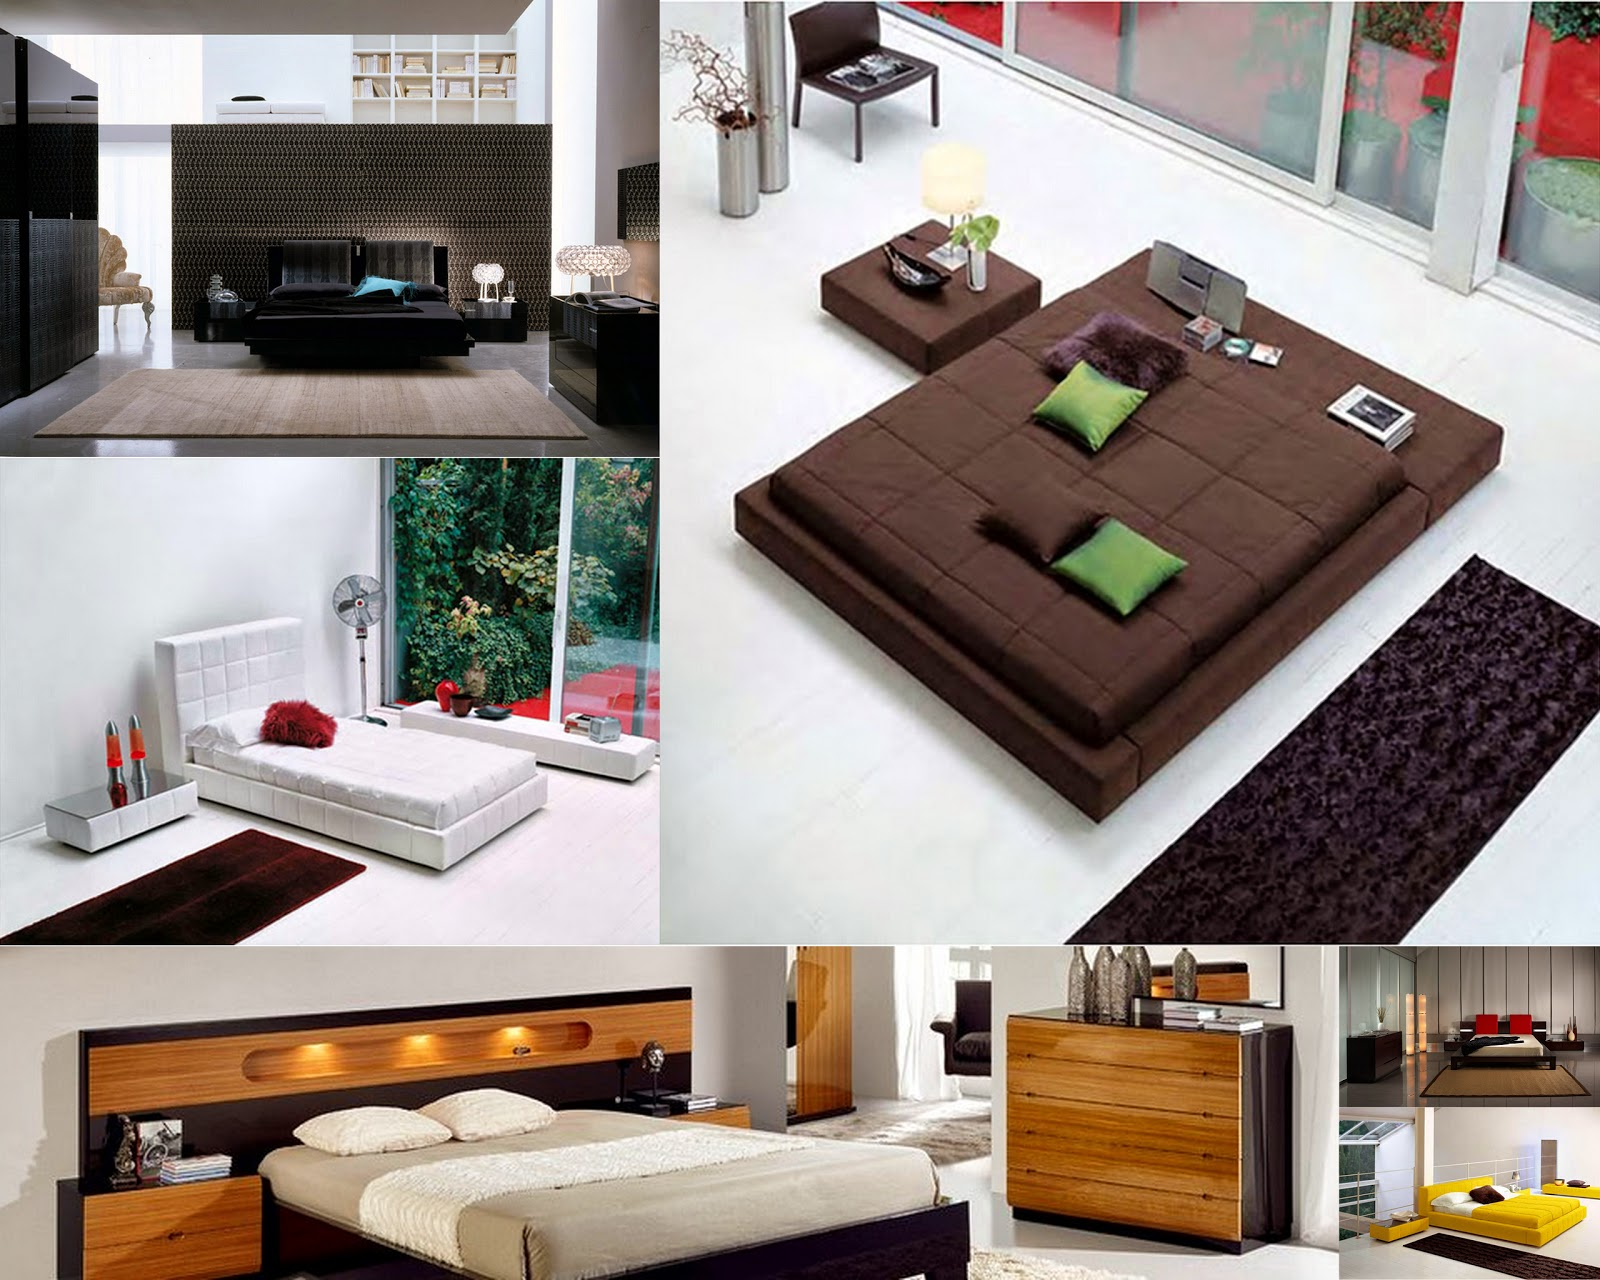 Bedroom ideas for married couples 2014 - Interior Design